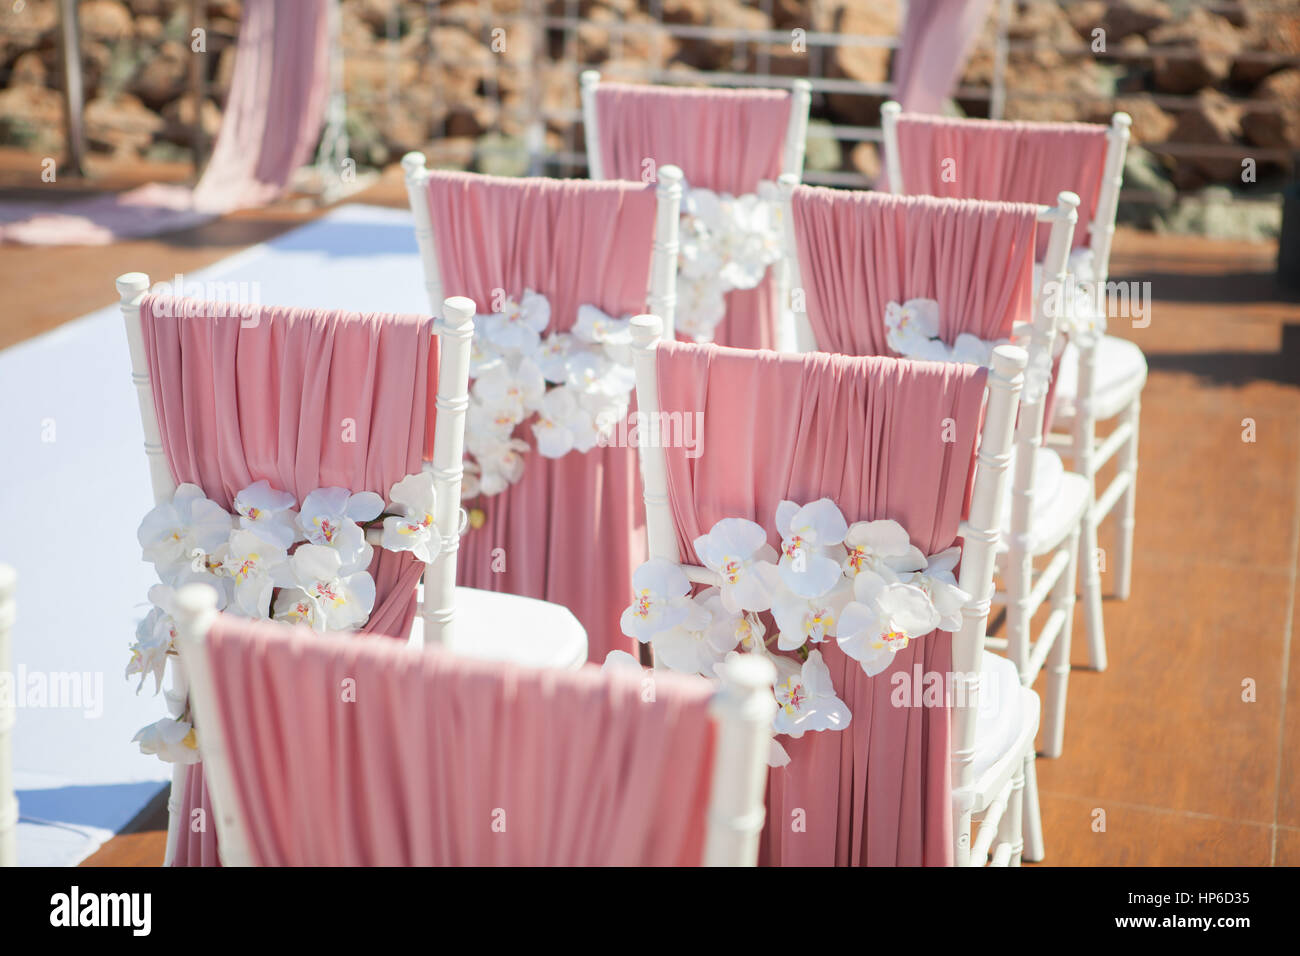 Orchid Wedding Table Decor Stock Photos & Orchid Wedding Table Decor ...